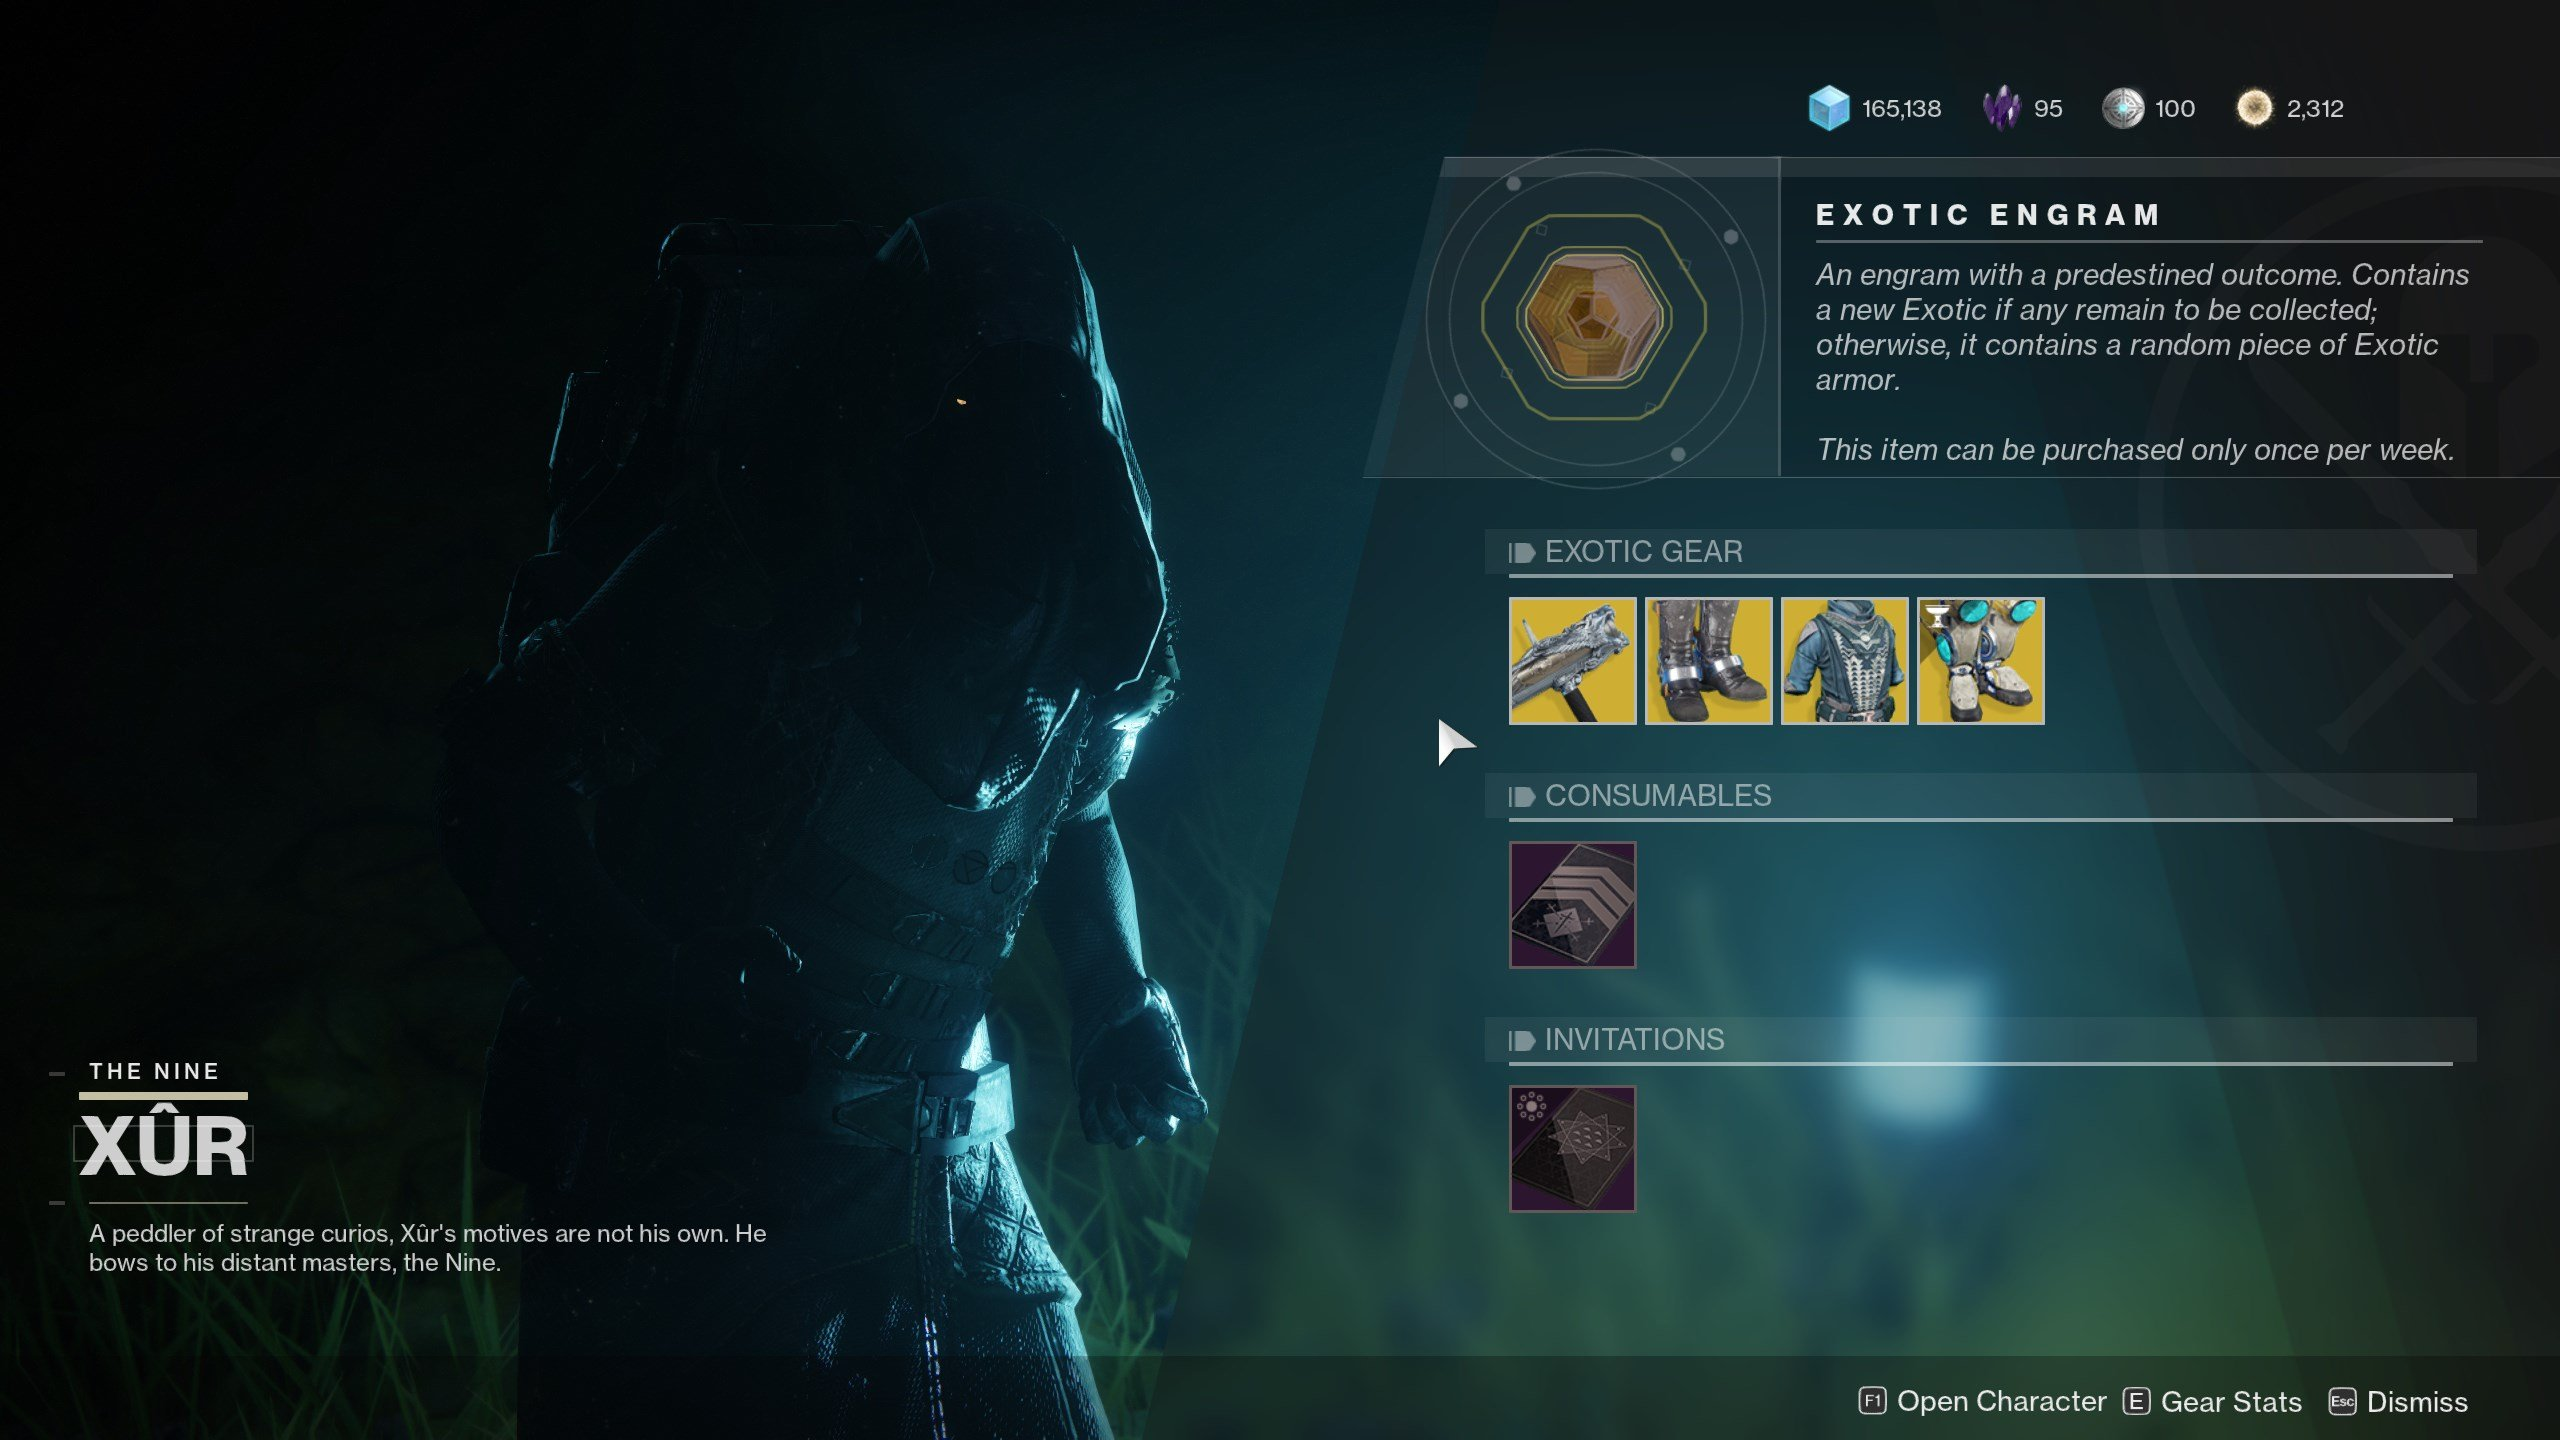 Xur's location and wares - Jan 31